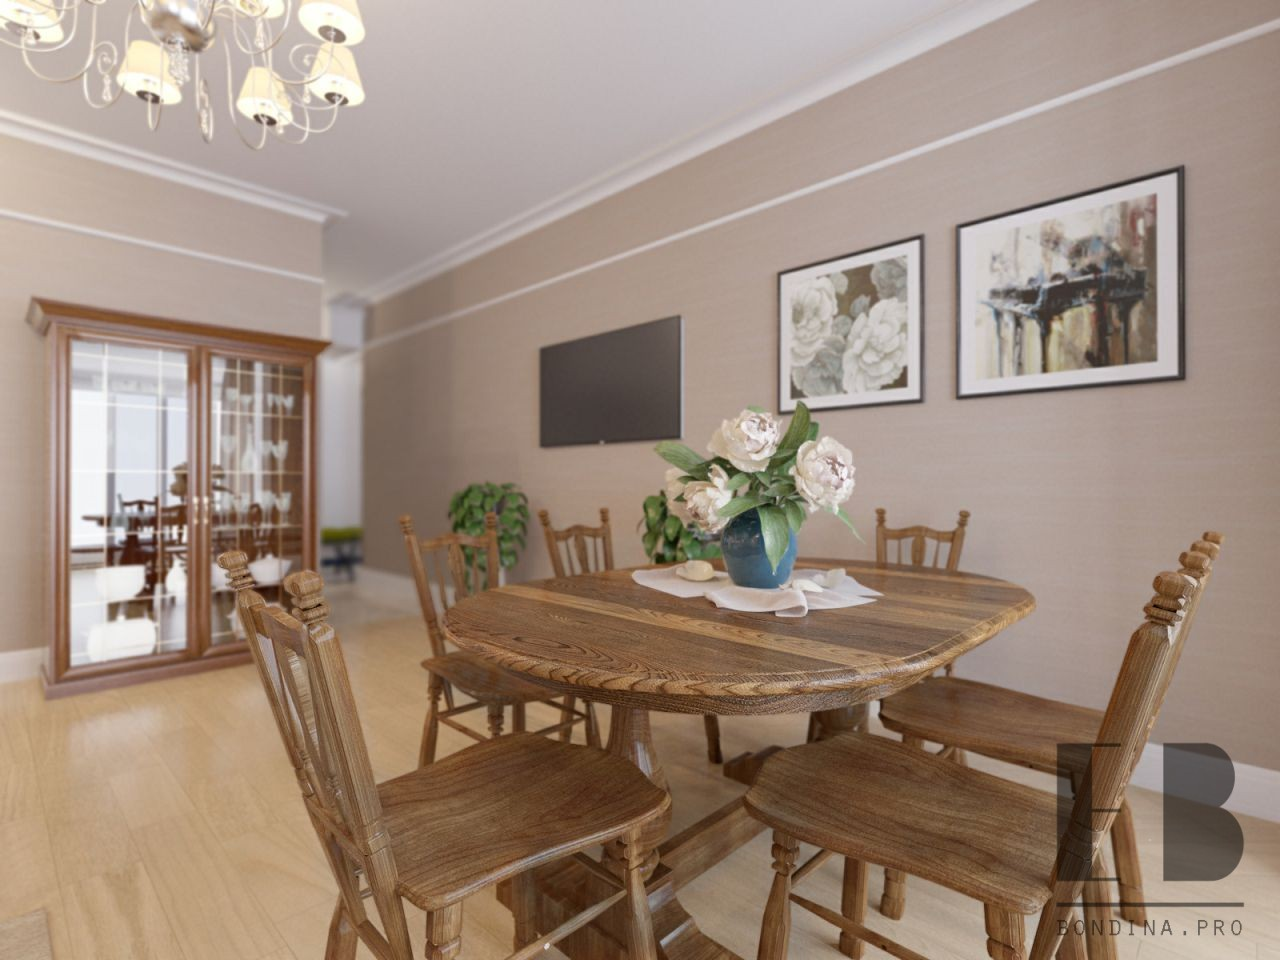 Dining room design in beige color with wooden capboard, table and chairs